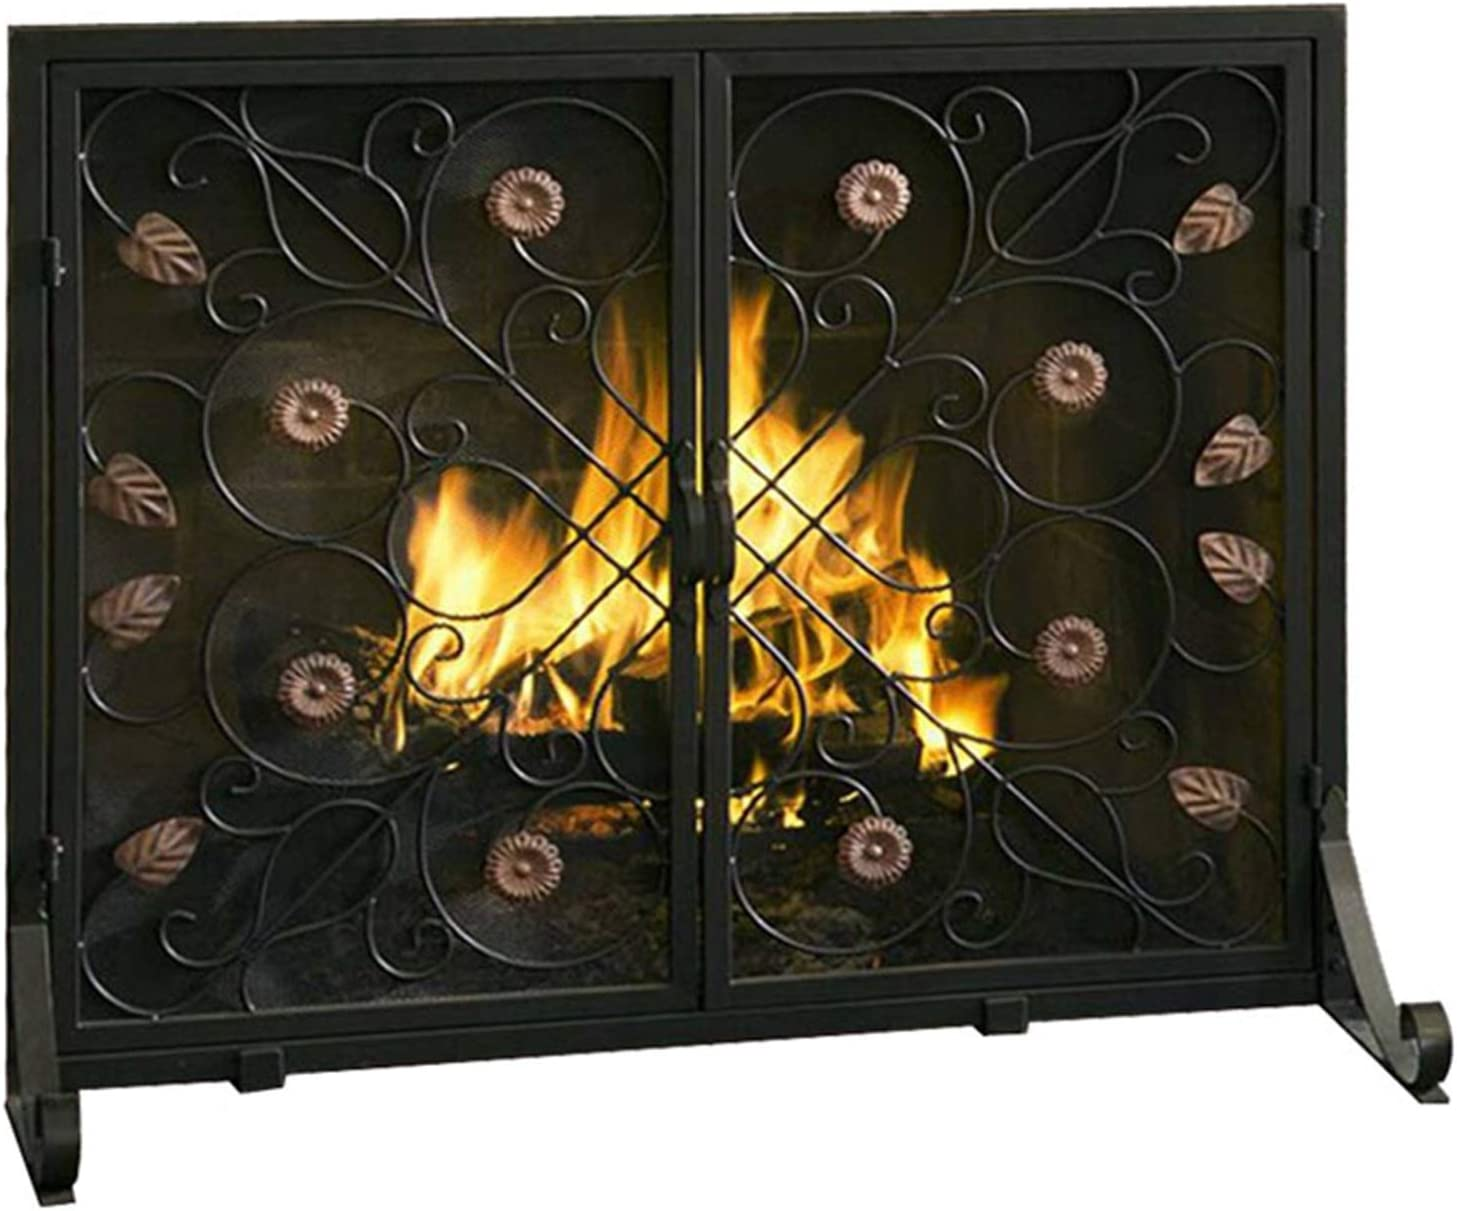 barture Freestanding Fireplace Time sale Los Angeles Mall Screen Fire European Retro Style